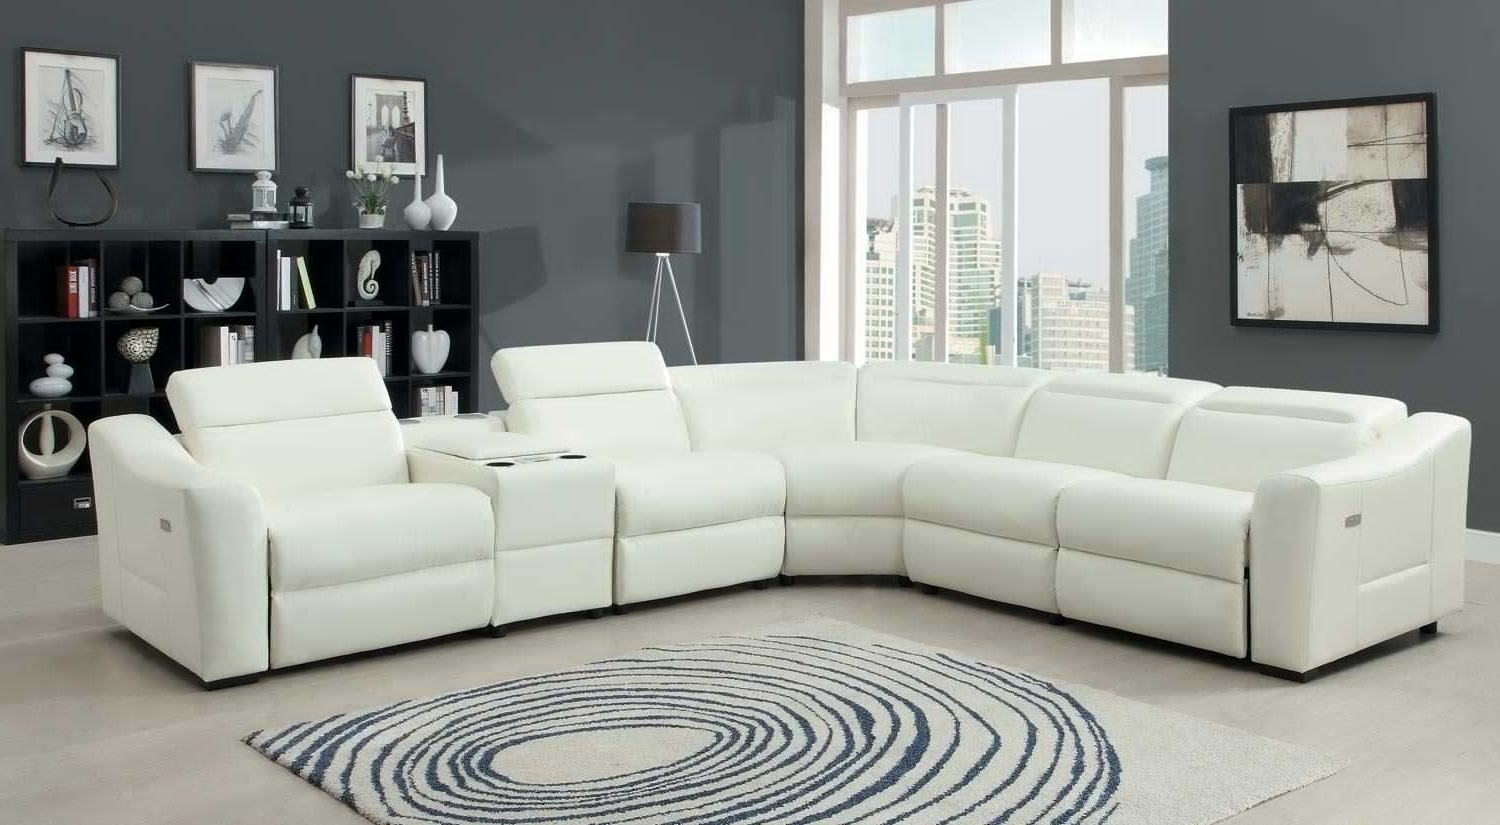 Tampa Fl Sectional Sofas Regarding Most Popular Sectional Sofa Design: Sectional Sofa Sets Sale Gray Tampa Fl (View 14 of 20)